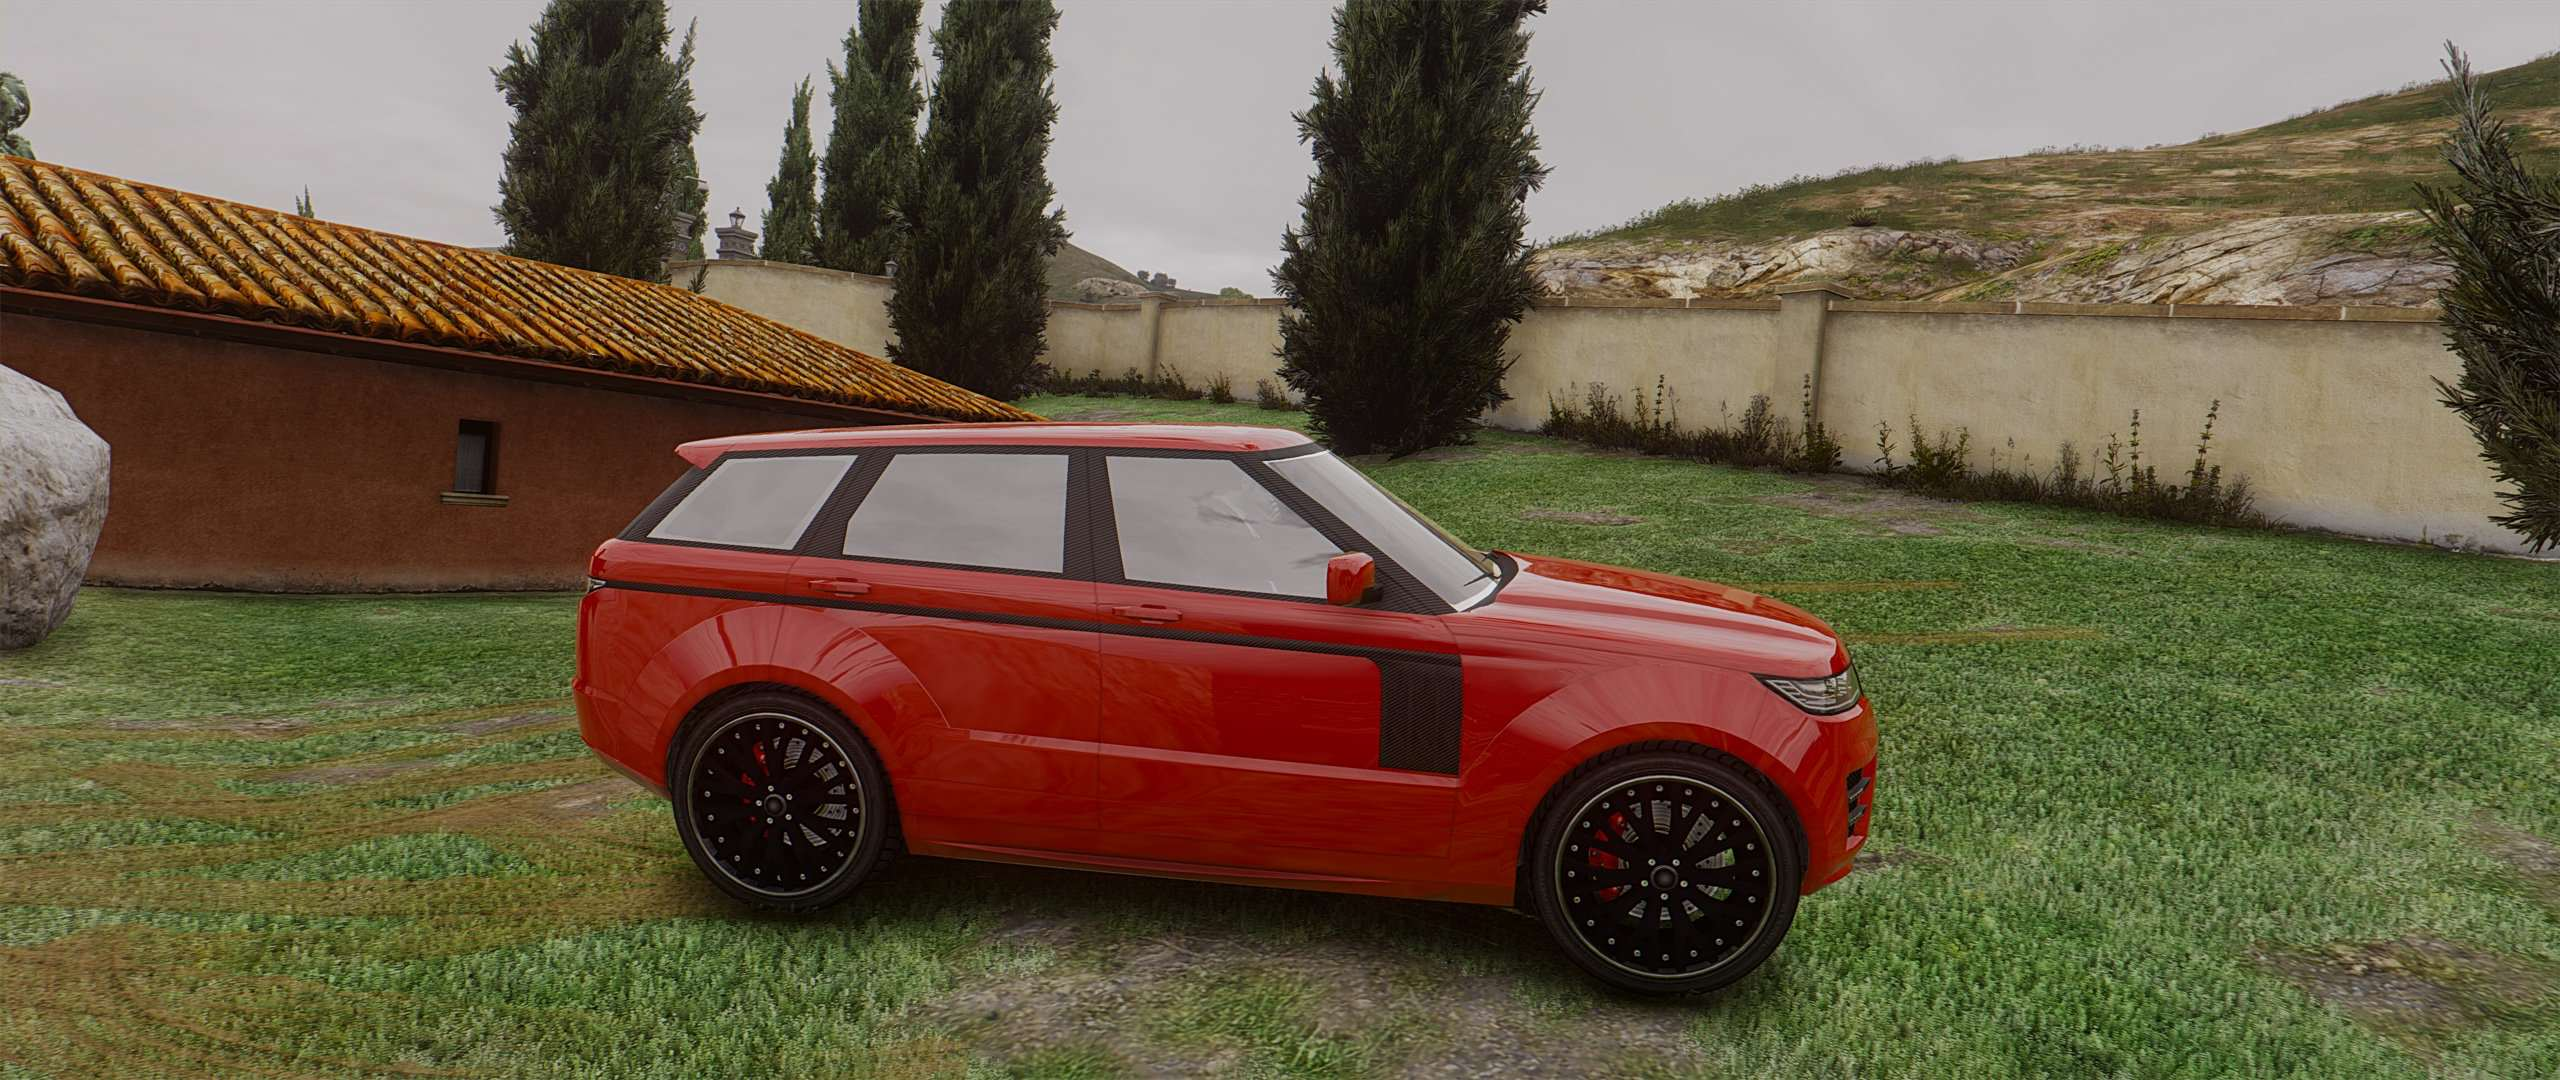 Incredible GTA V Mod Aims For True Photorealism 87832a 2